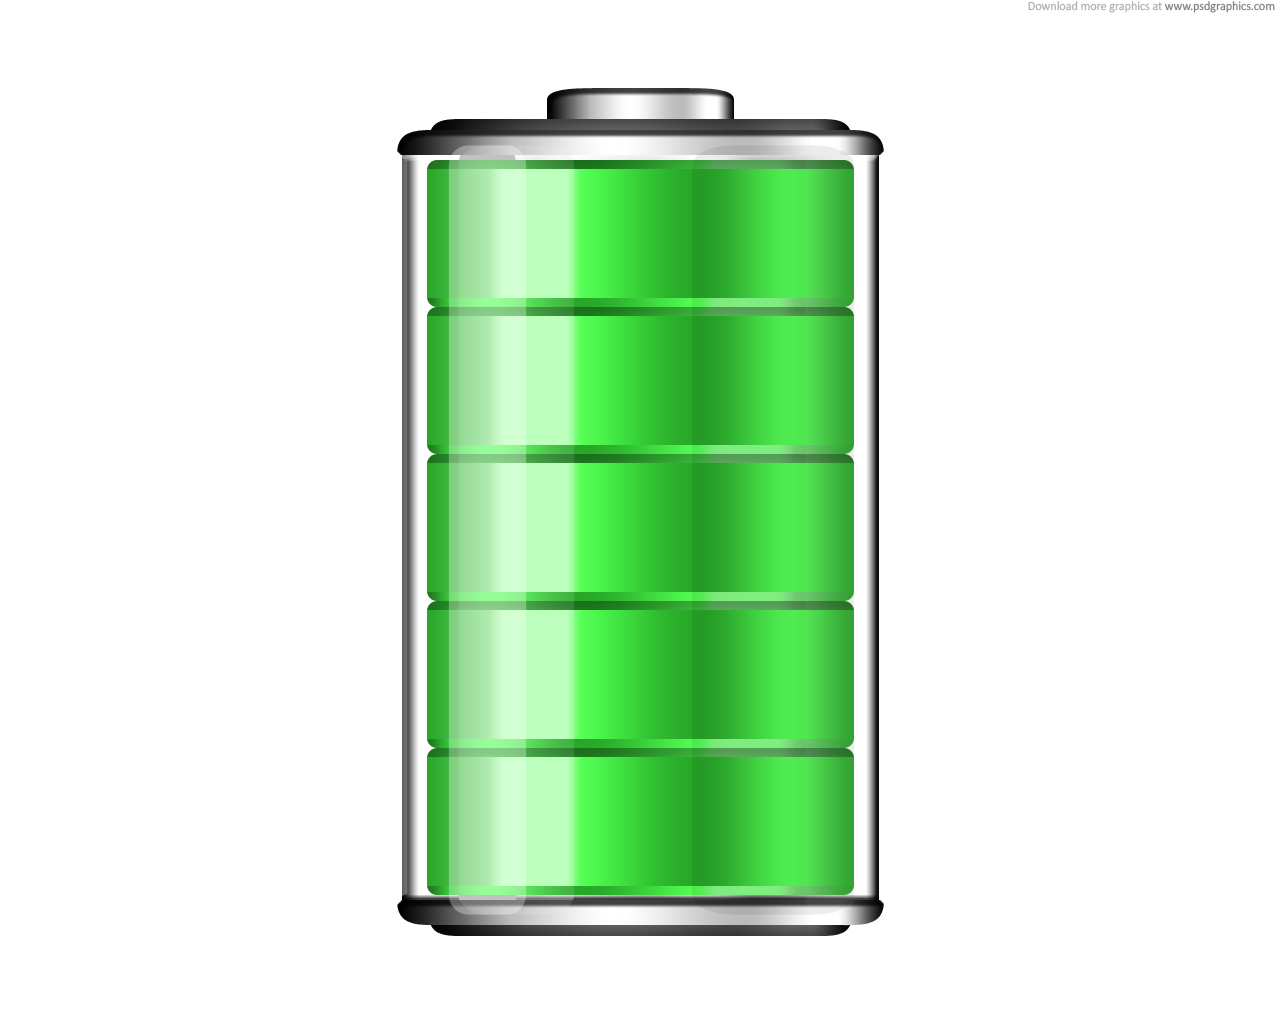 8 Cell Phone Battery Icon Images